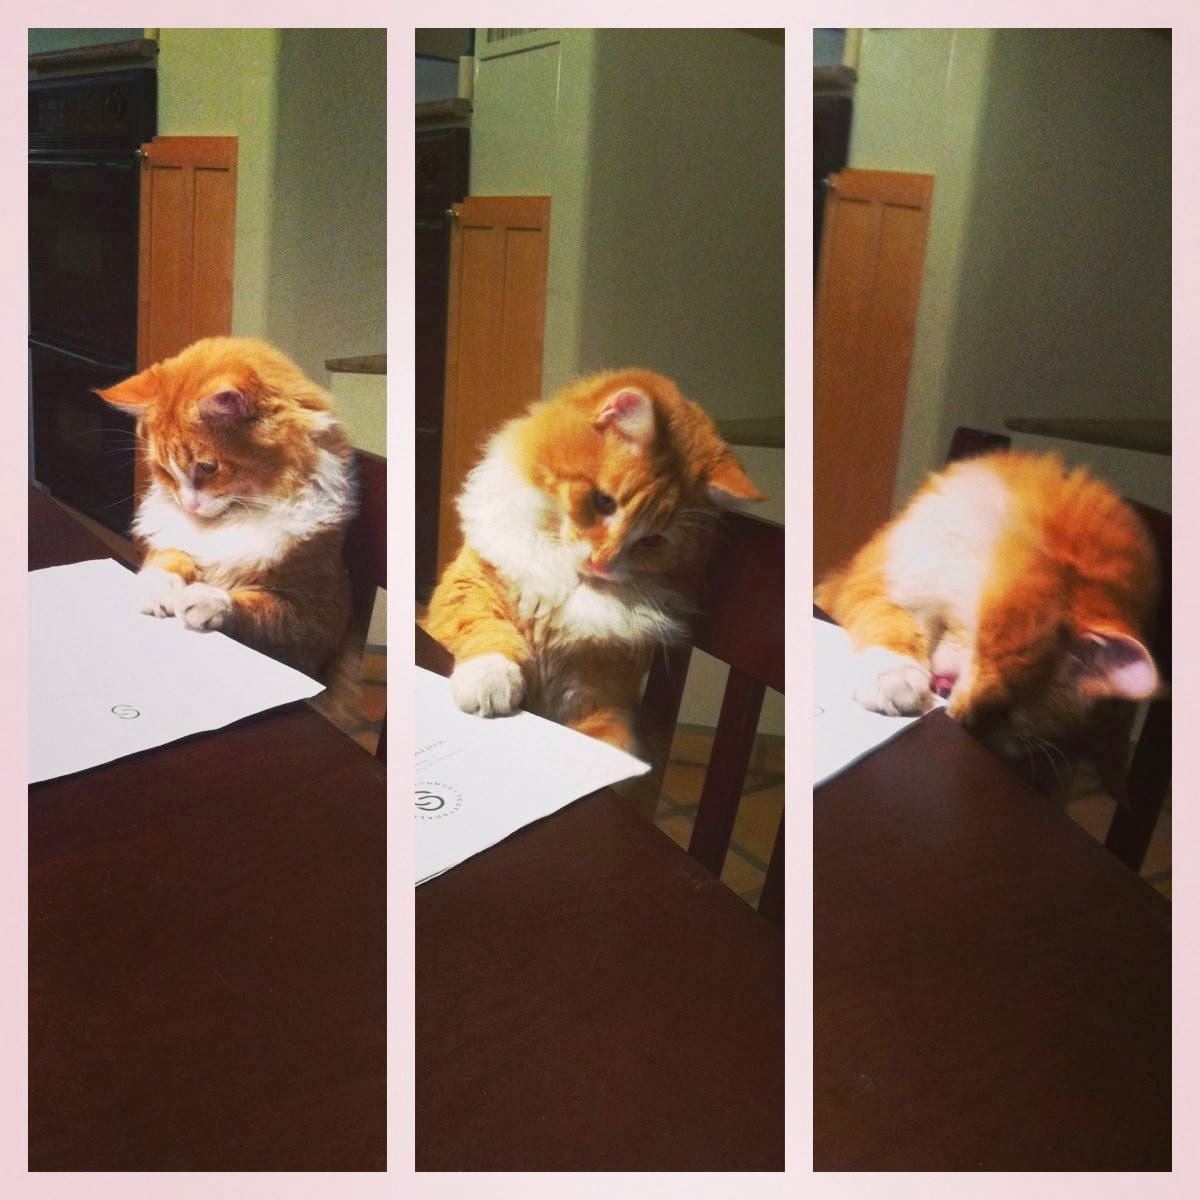 Funny cats - part 87 (40 pics + 10 gifs), cat investigates a paper then licks it